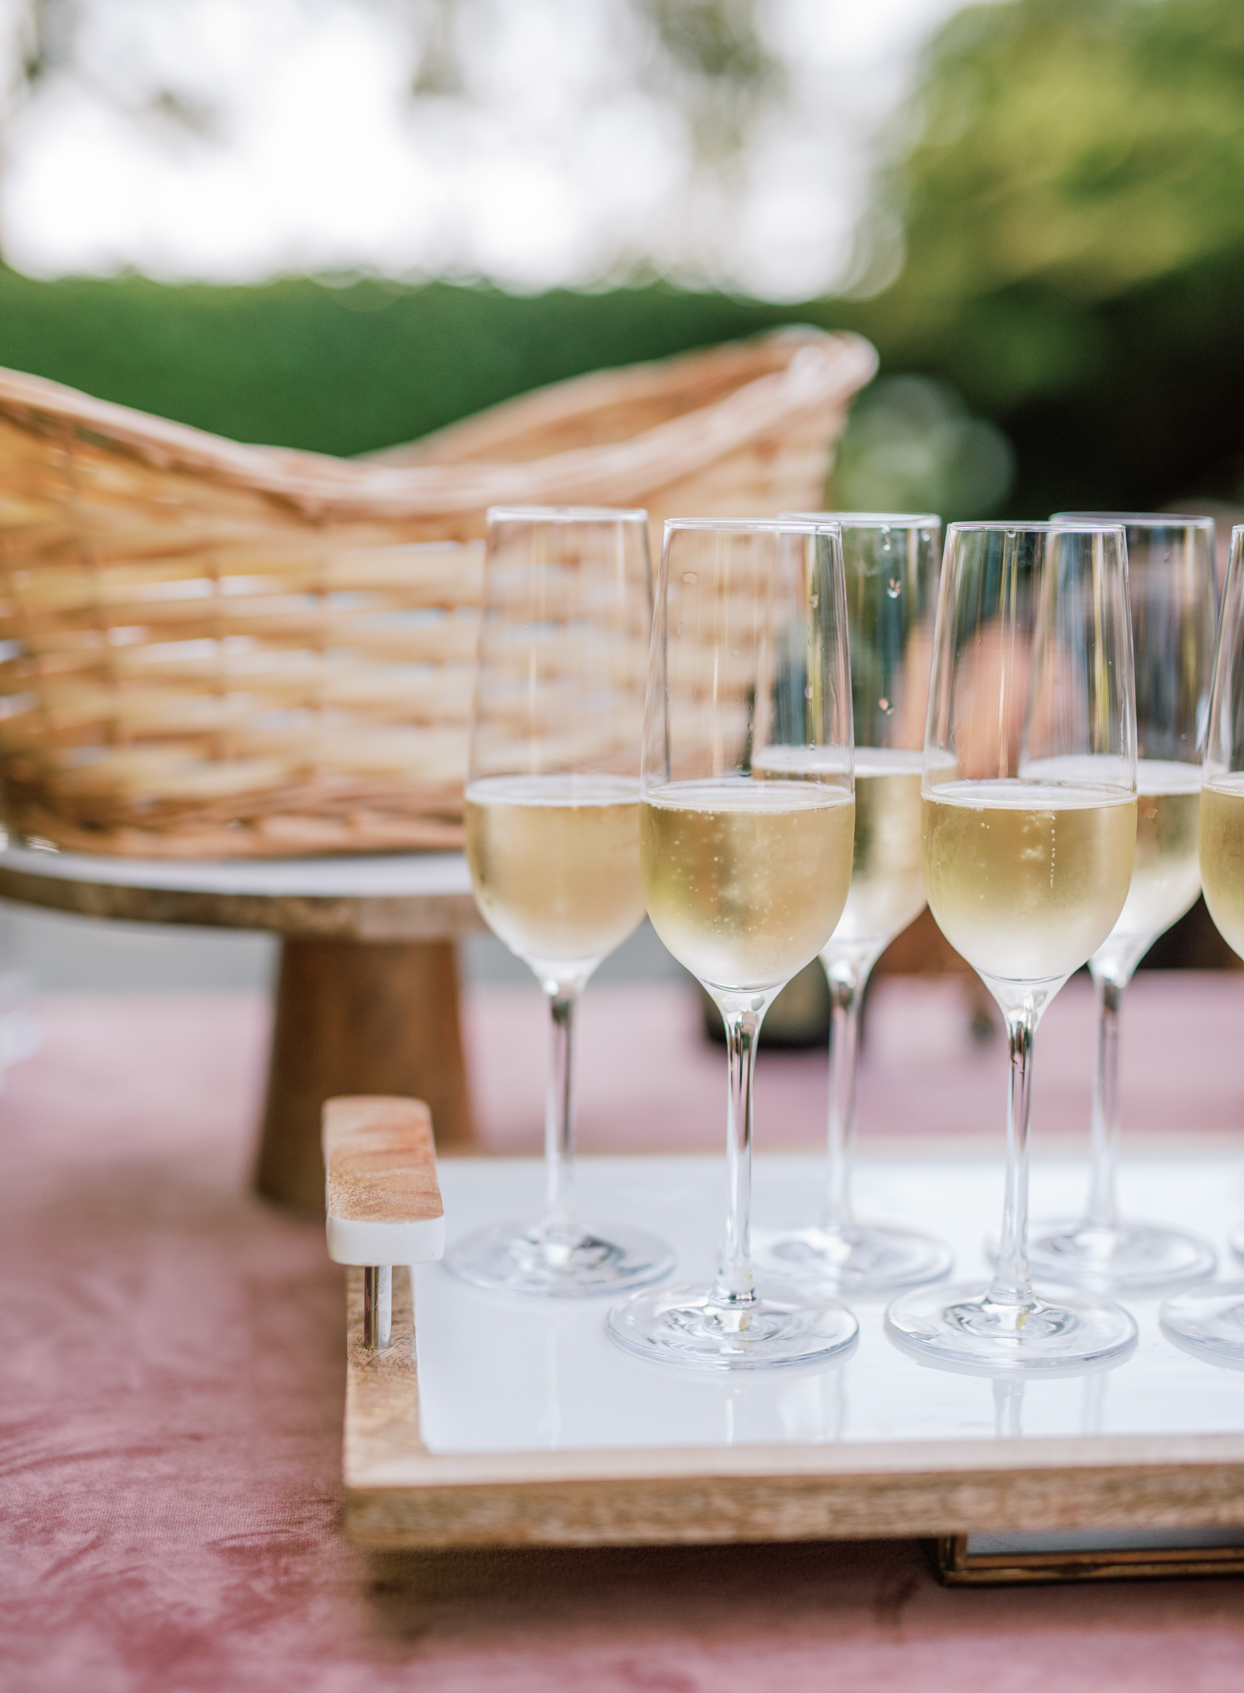 glasses of champagne on wooden serving tray